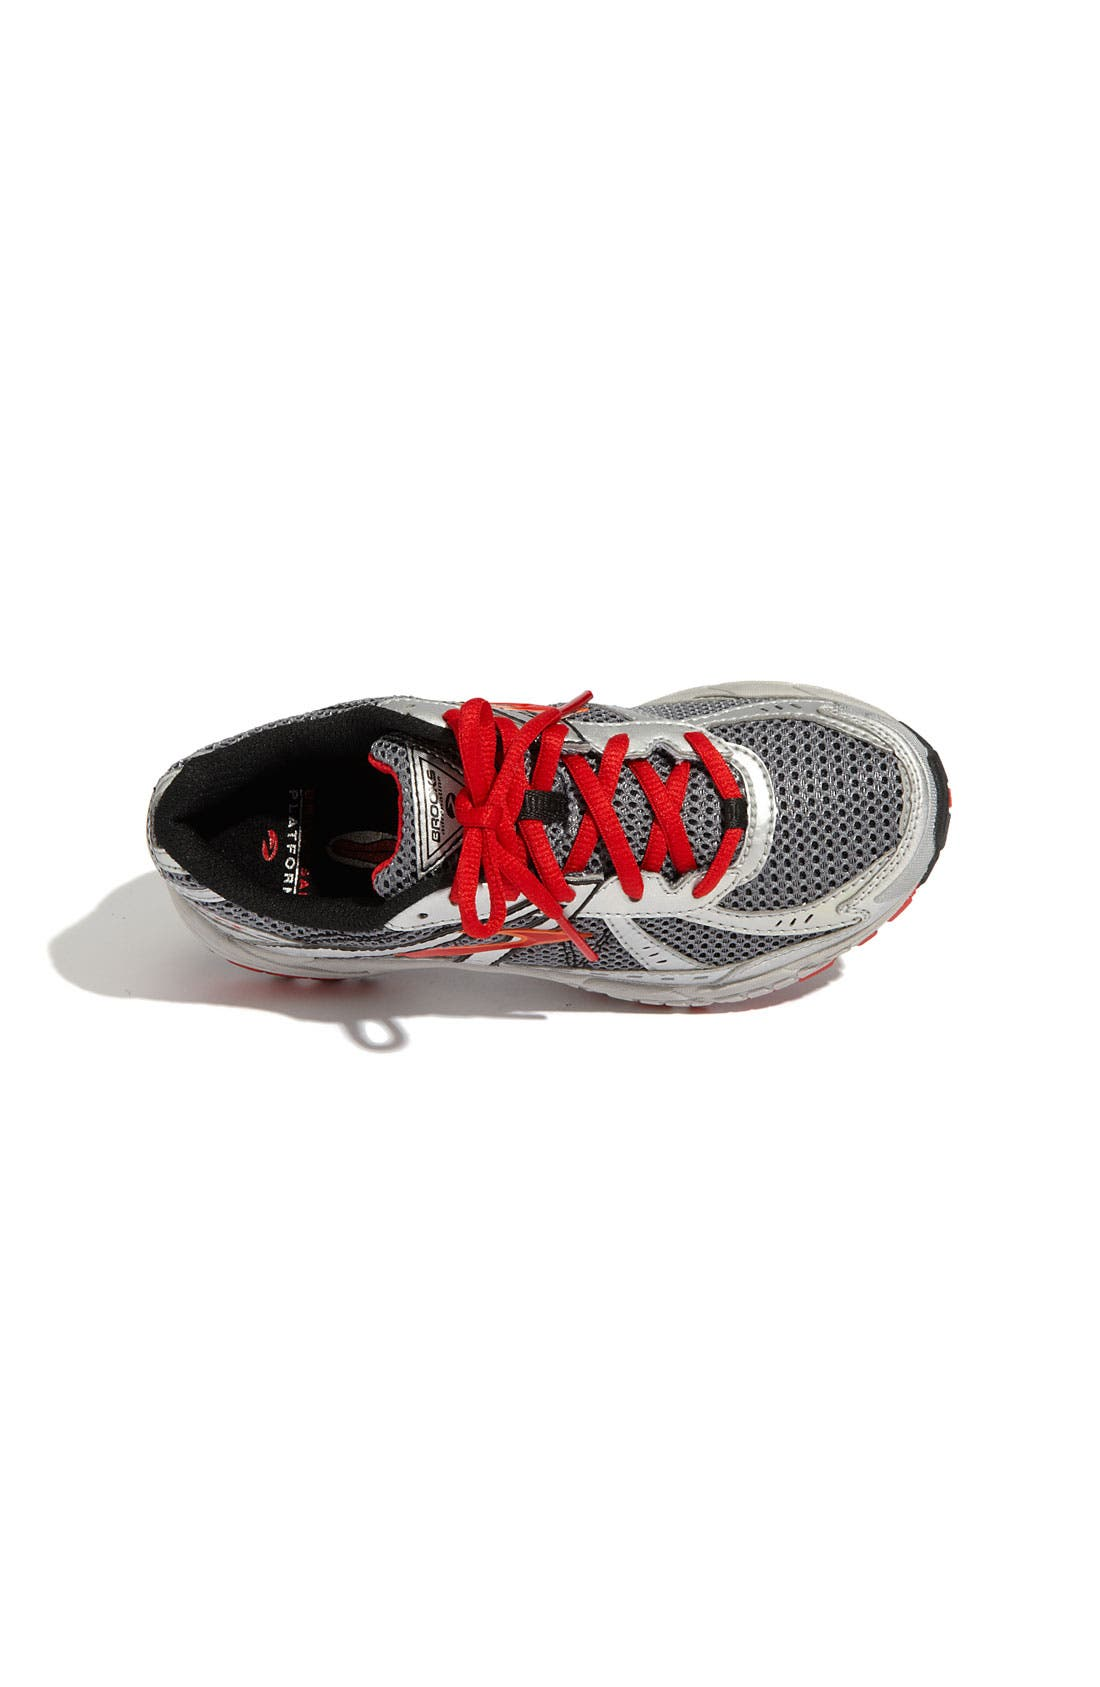 BROOKS,                             'Adrenaline' Running Shoe,                             Alternate thumbnail 5, color,                             020